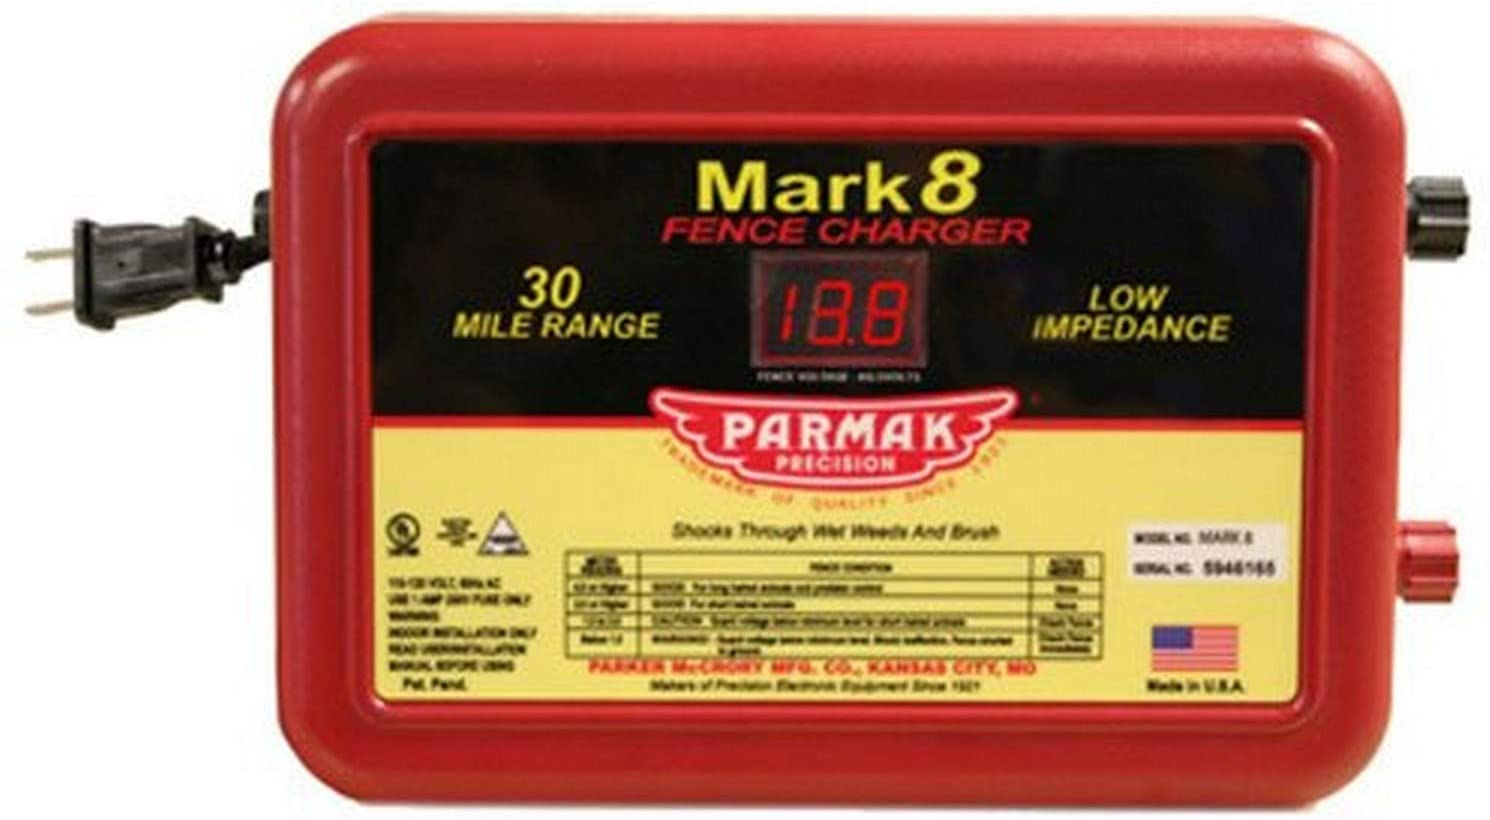 MARK8 Low Impedance 110/120-Volt 30-Mile Range Electric Fence Charger(reflecting); Indoor only; Ideal for livestock or predator control; UL listed (US & Canada) (MADE in USA)